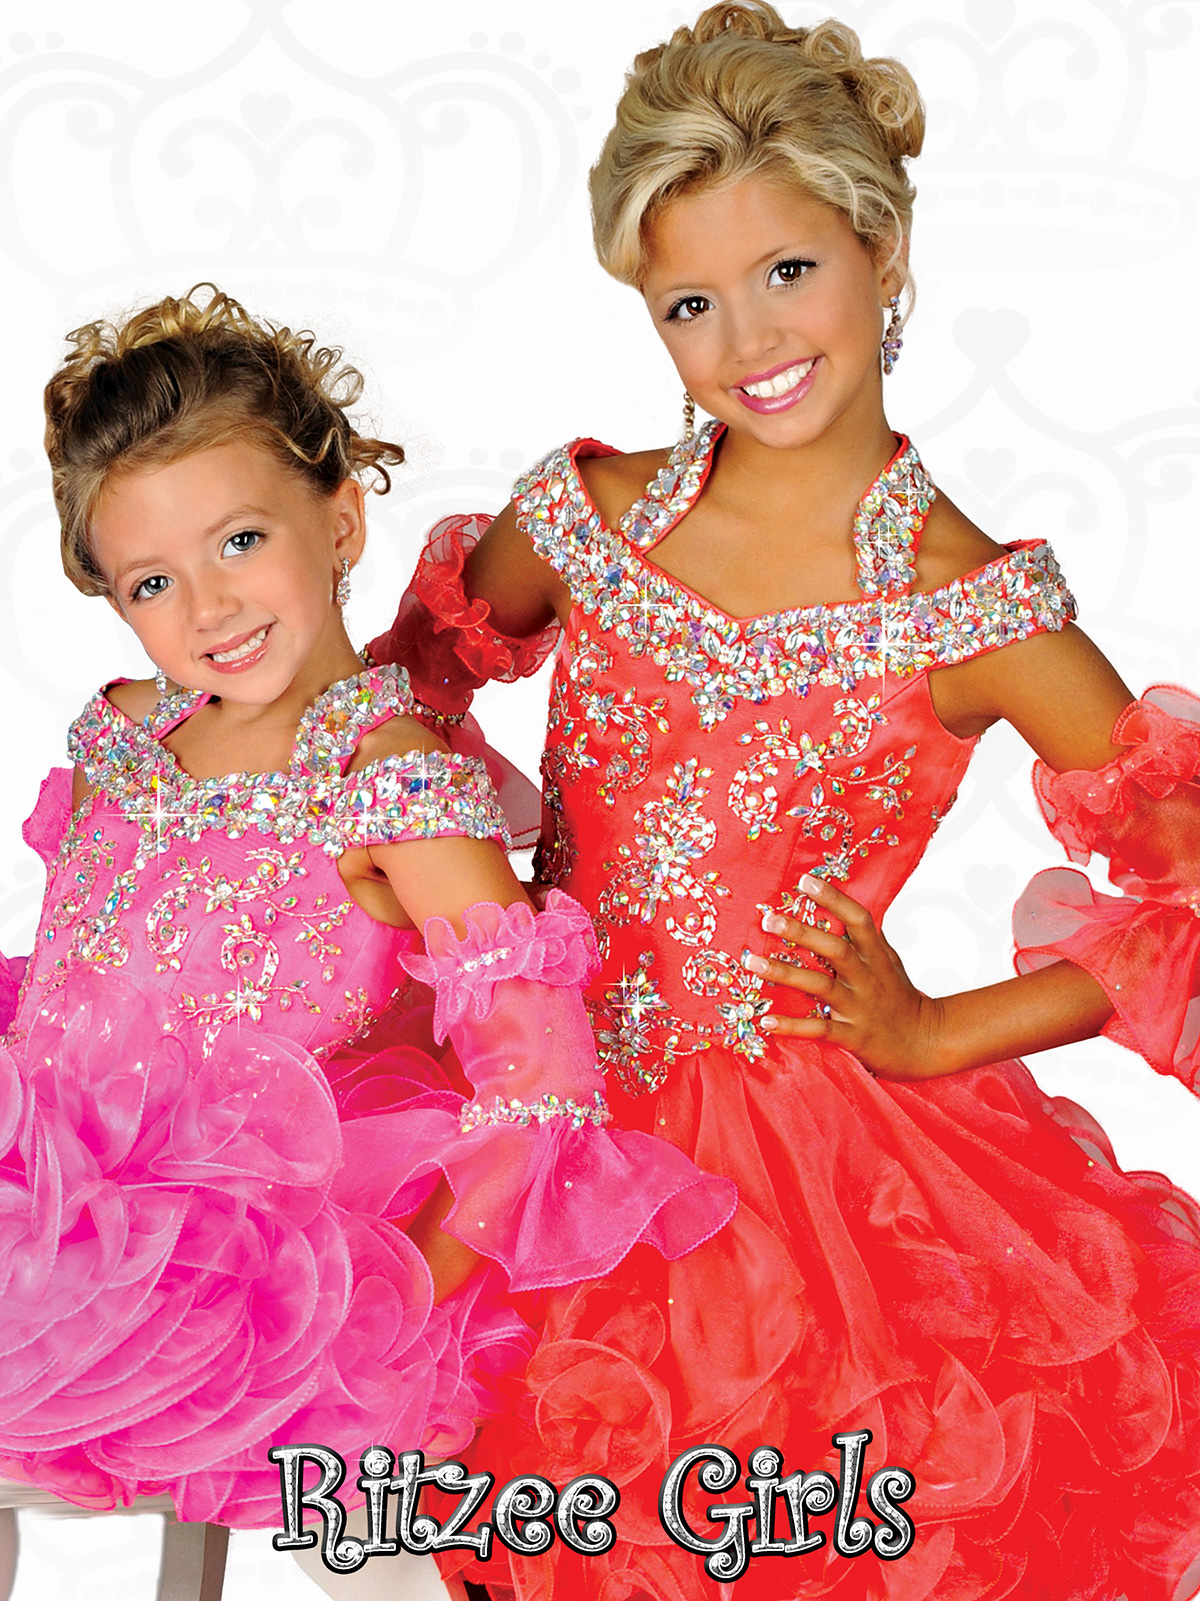 Halter Straps Ruffled Skirt Ritzee Girls Cupcake Pageant Gown B526 ...